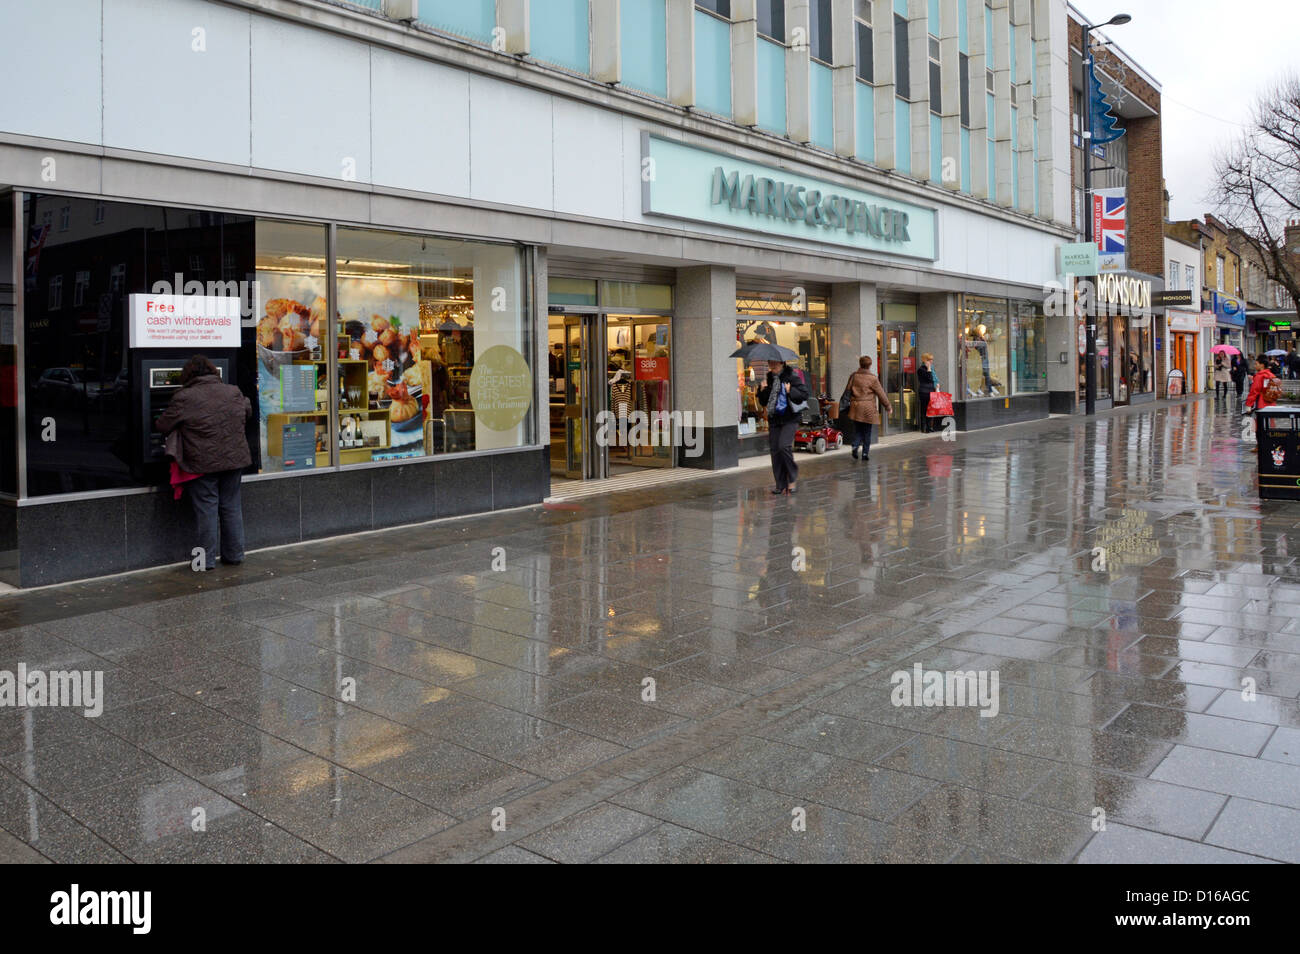 Raining on shopping high street outside Marks and Spencer store - Stock Image